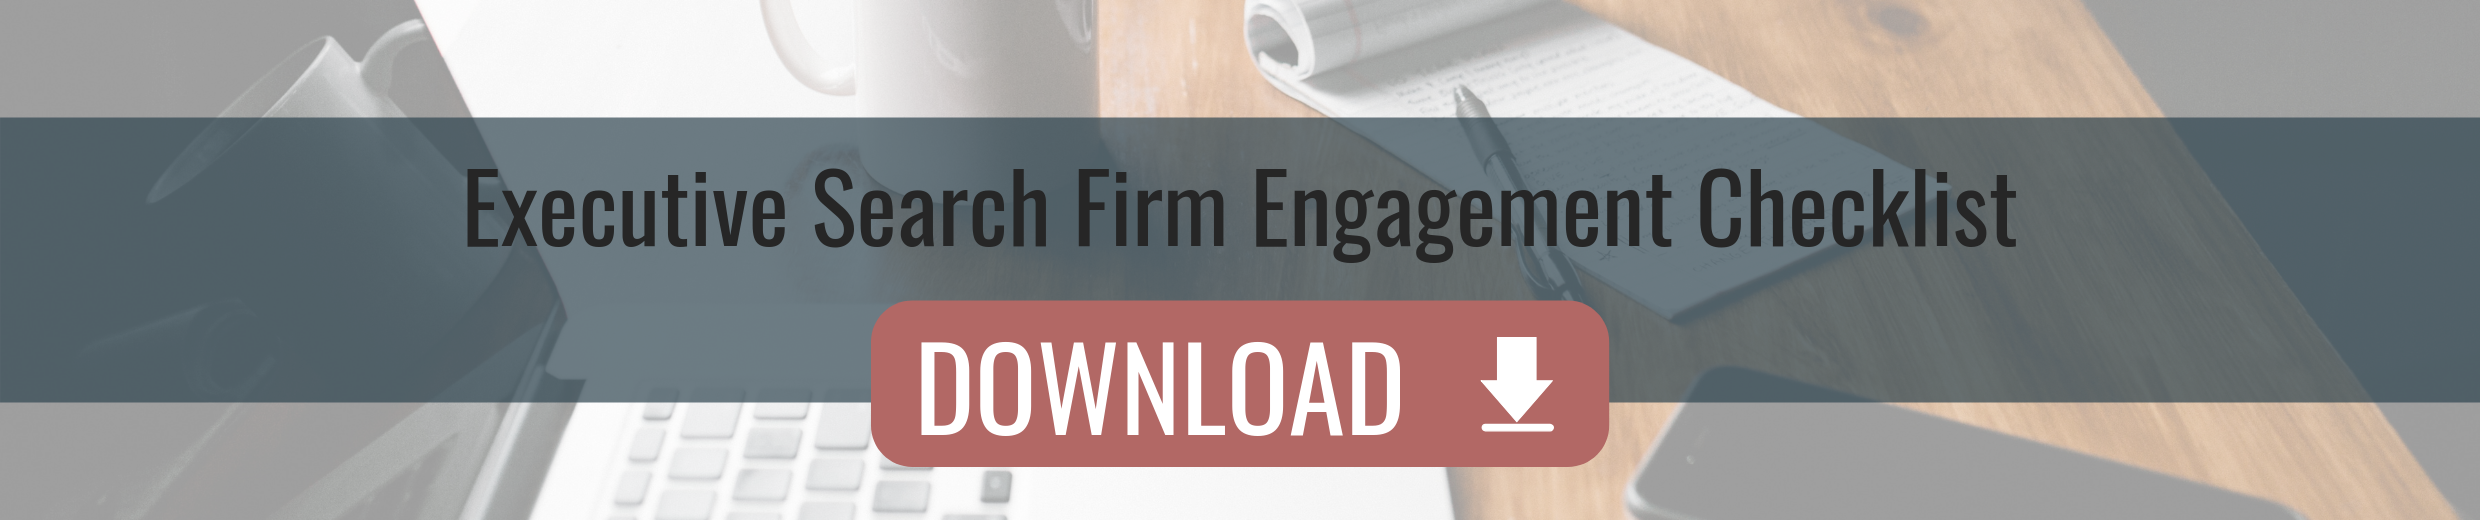 Executive Search Firm Engagement Checklist